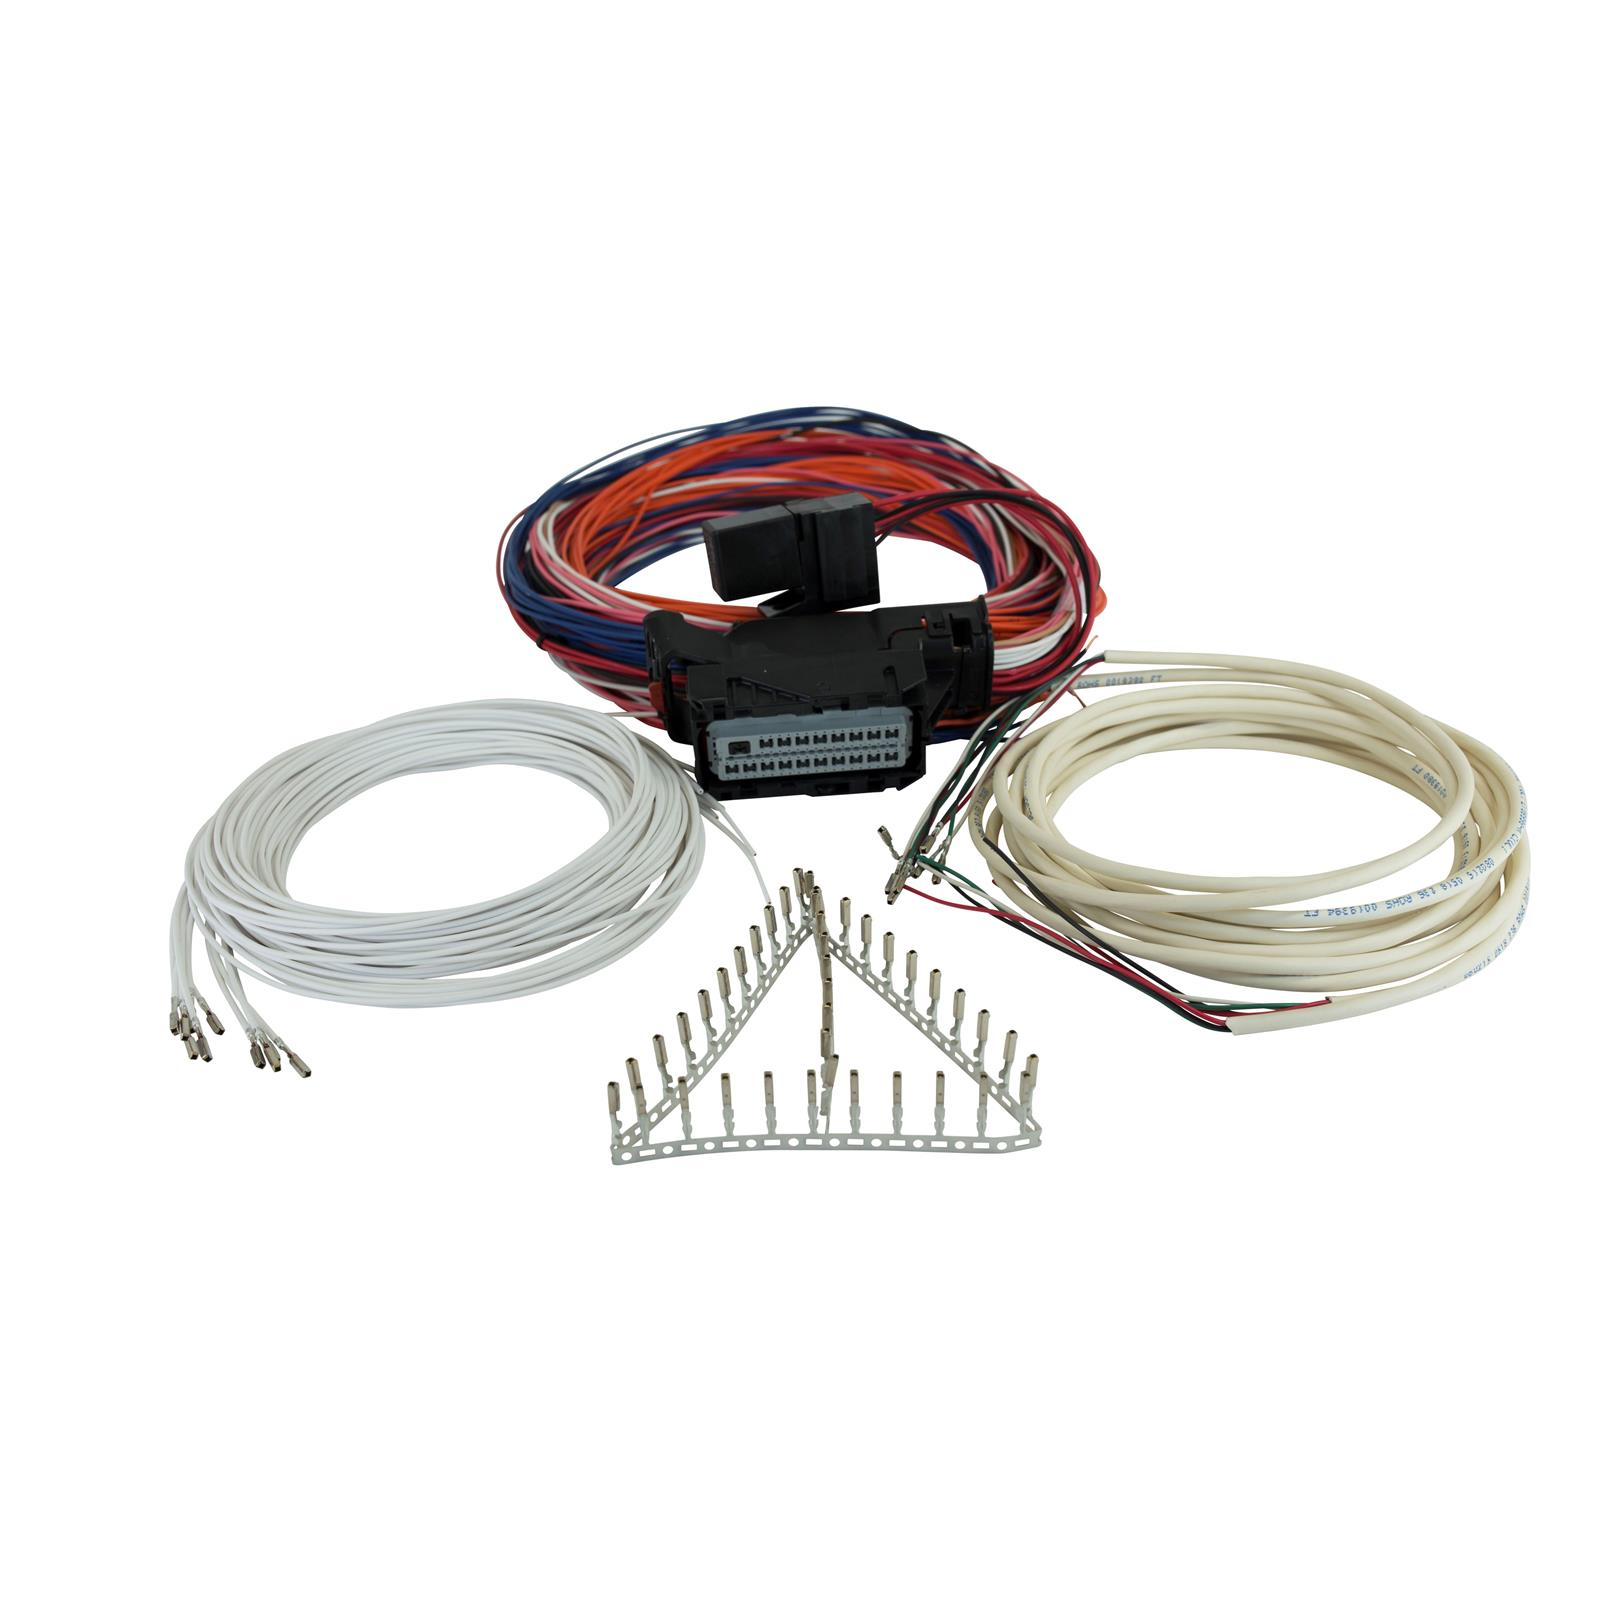 AEM 30-3707 Infinity Mini-Harness on spark plug types, door handle types, safety harness types, circuit breaker types, valve types, battery types, seat belt types, lights types, suspension types, antenna types, engine types, power supply types, fan types,